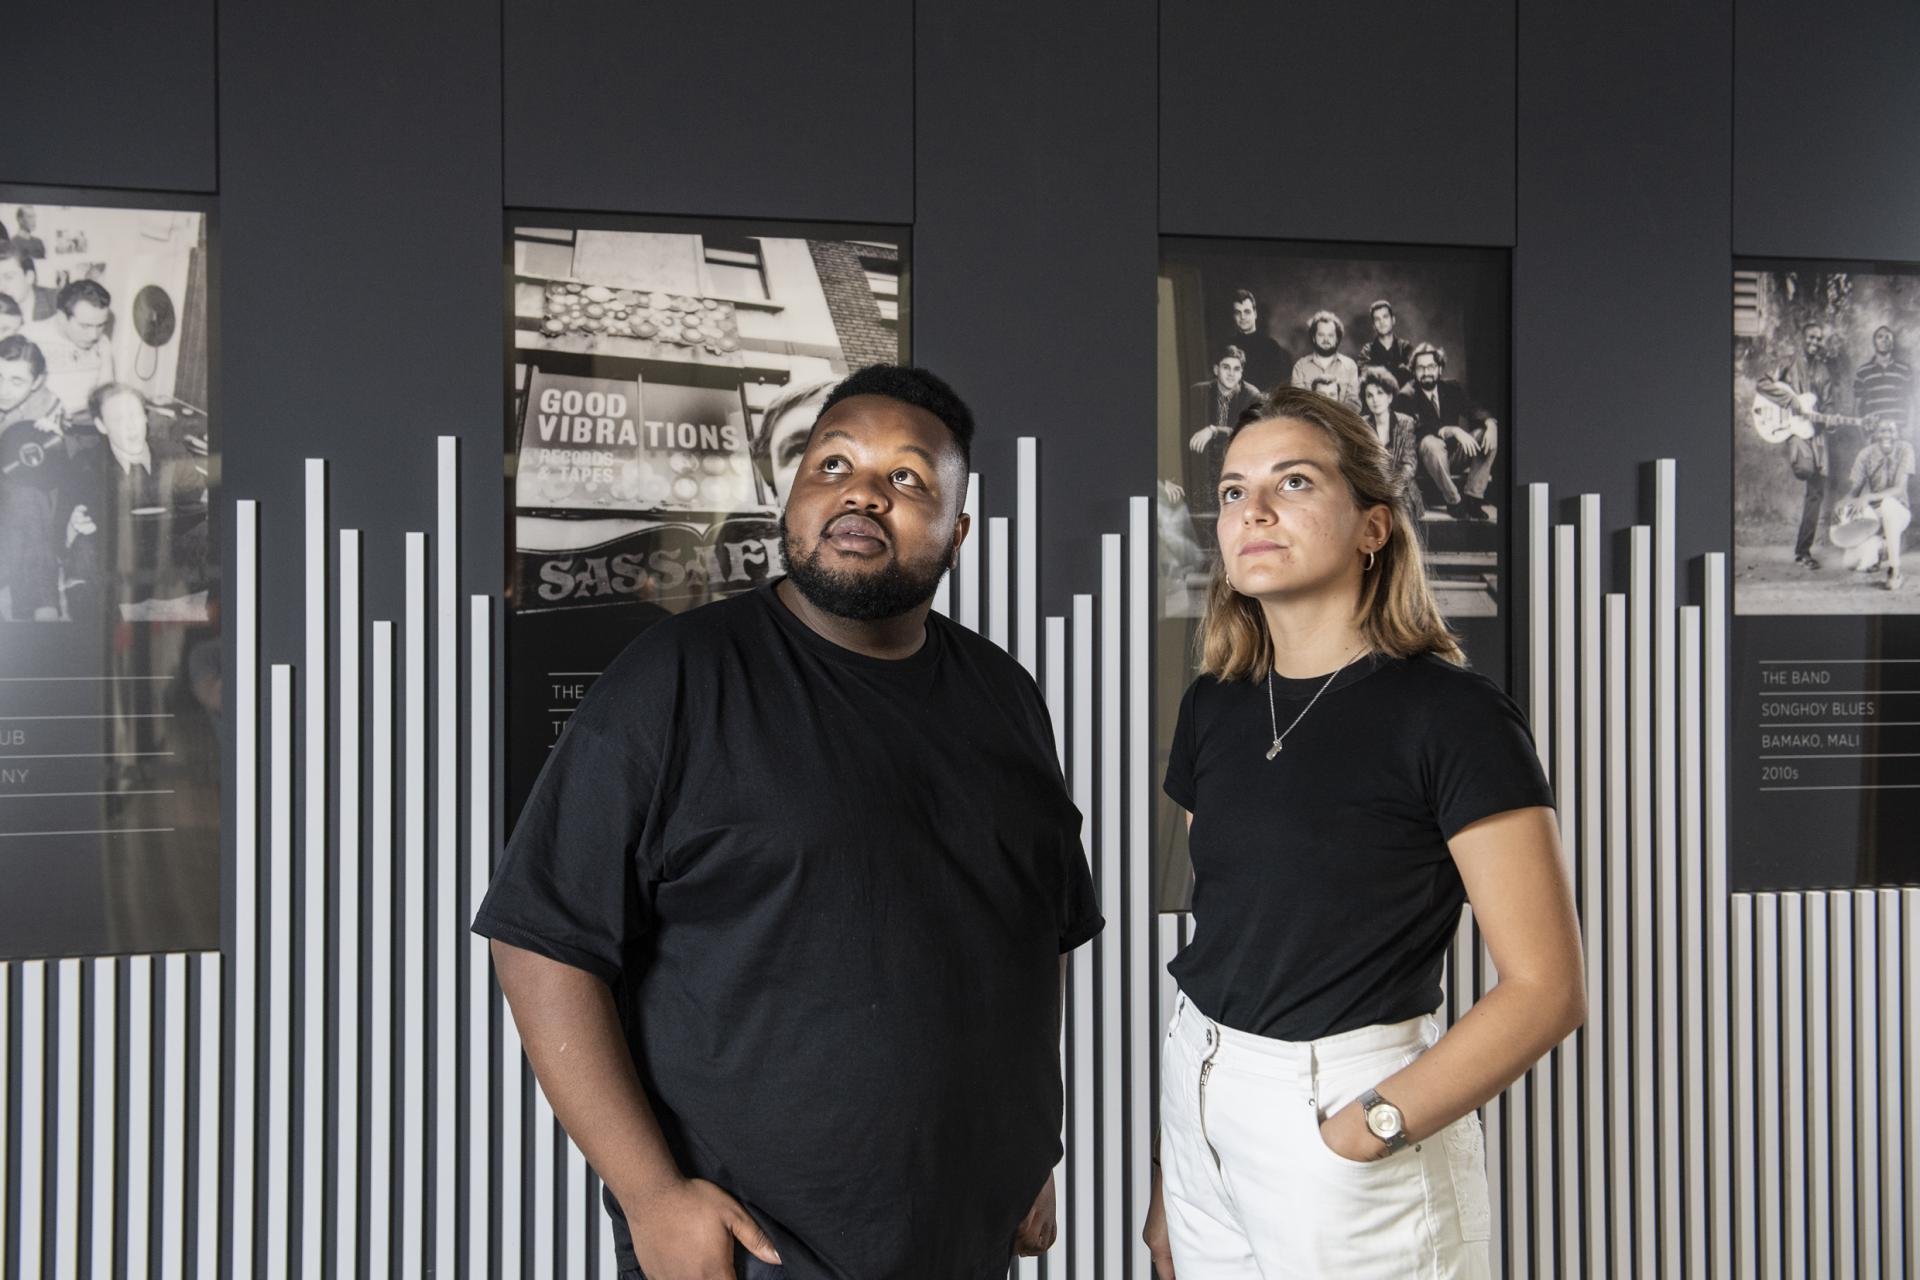 Young man and woman stand in front of black and white images of Rebel Sounds exhibition